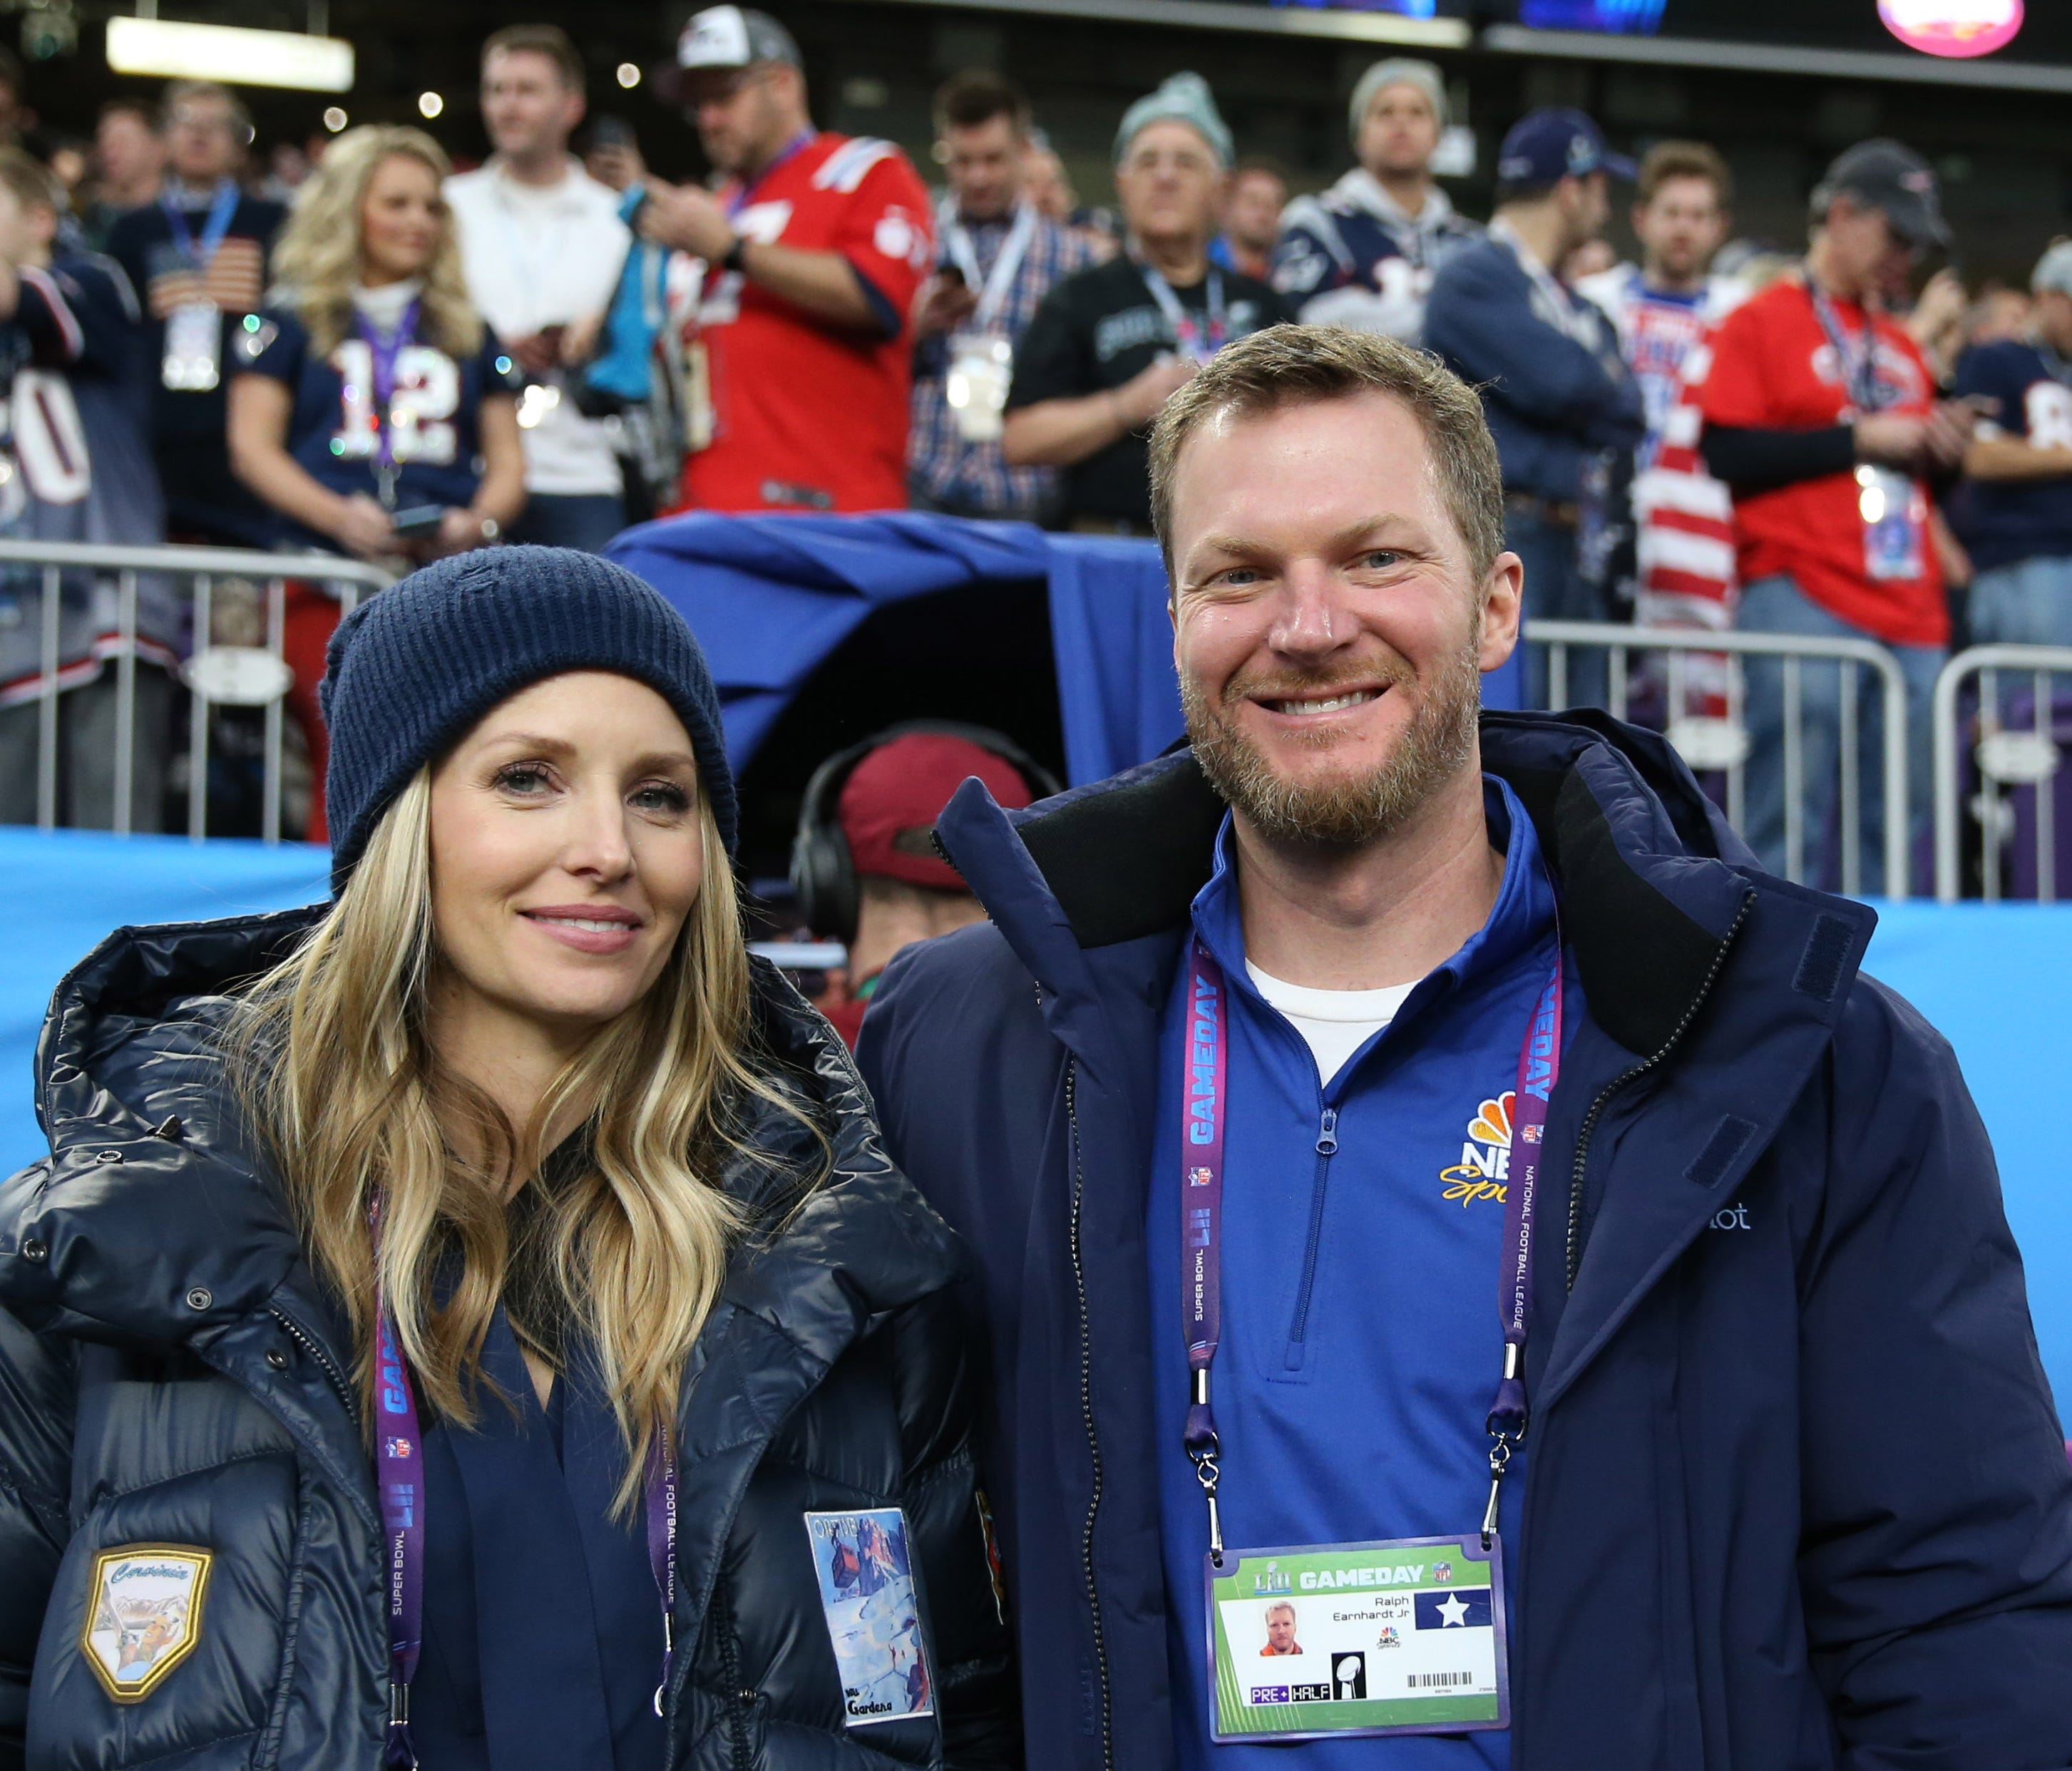 NASCAR retired driver Dale Earnhardt, Jr. and wife Amy Reimann in attendance before Super Bowl LII between the Philadelphia Eagles and the New England Patriots at U.S. Bank Stadium.